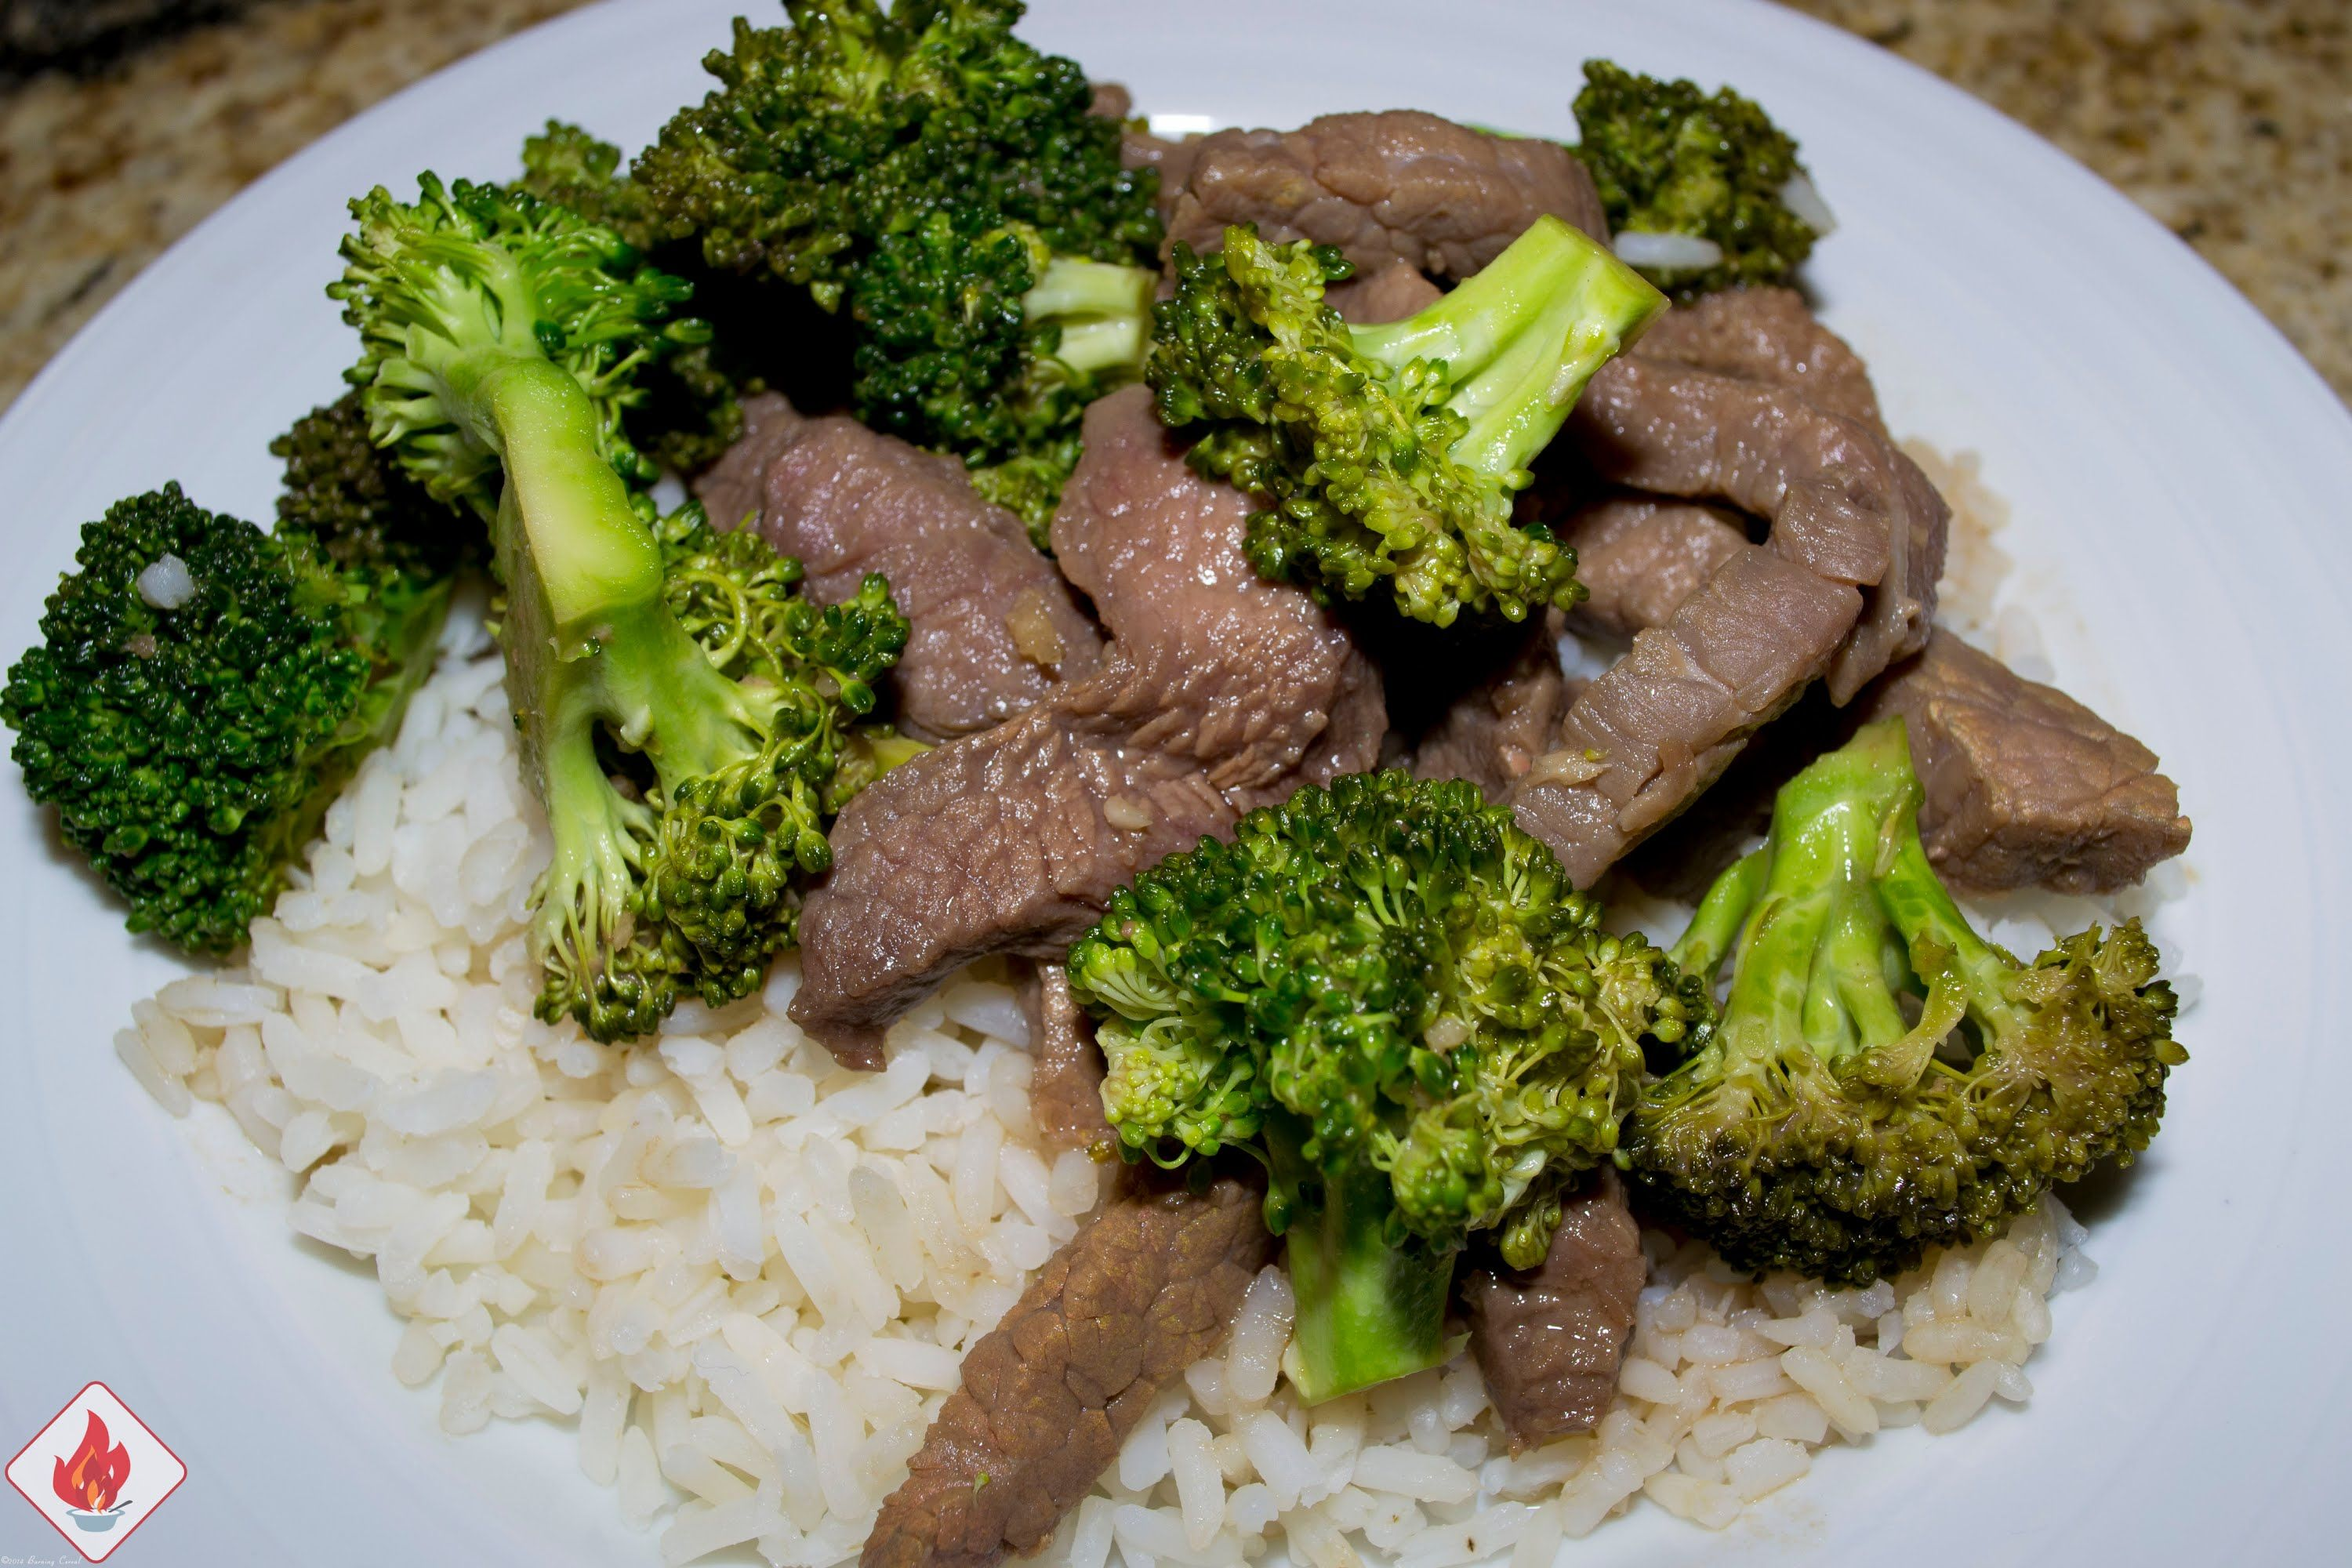 In this recipe I will show you a pretty easy slow cooker version that doesn't take too much energy to make. I see beef & broccoli on so many restaurant menus and trust me, I've eaten it from many of those restaurants. Some better than others and some not so great. Give this a try, it really is that easy. Slow Cooker Beef Broccoli - RECIPE